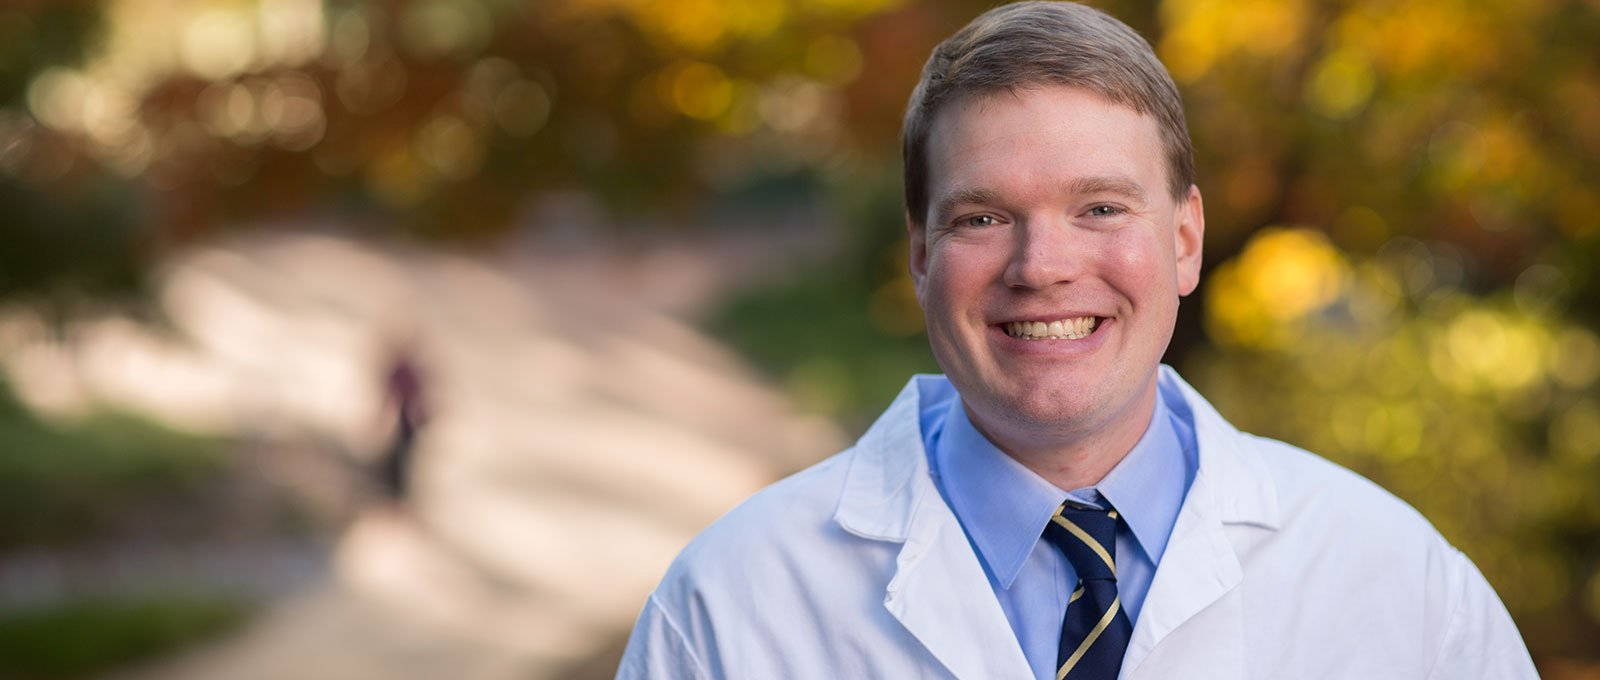 Dr. Zach Willis